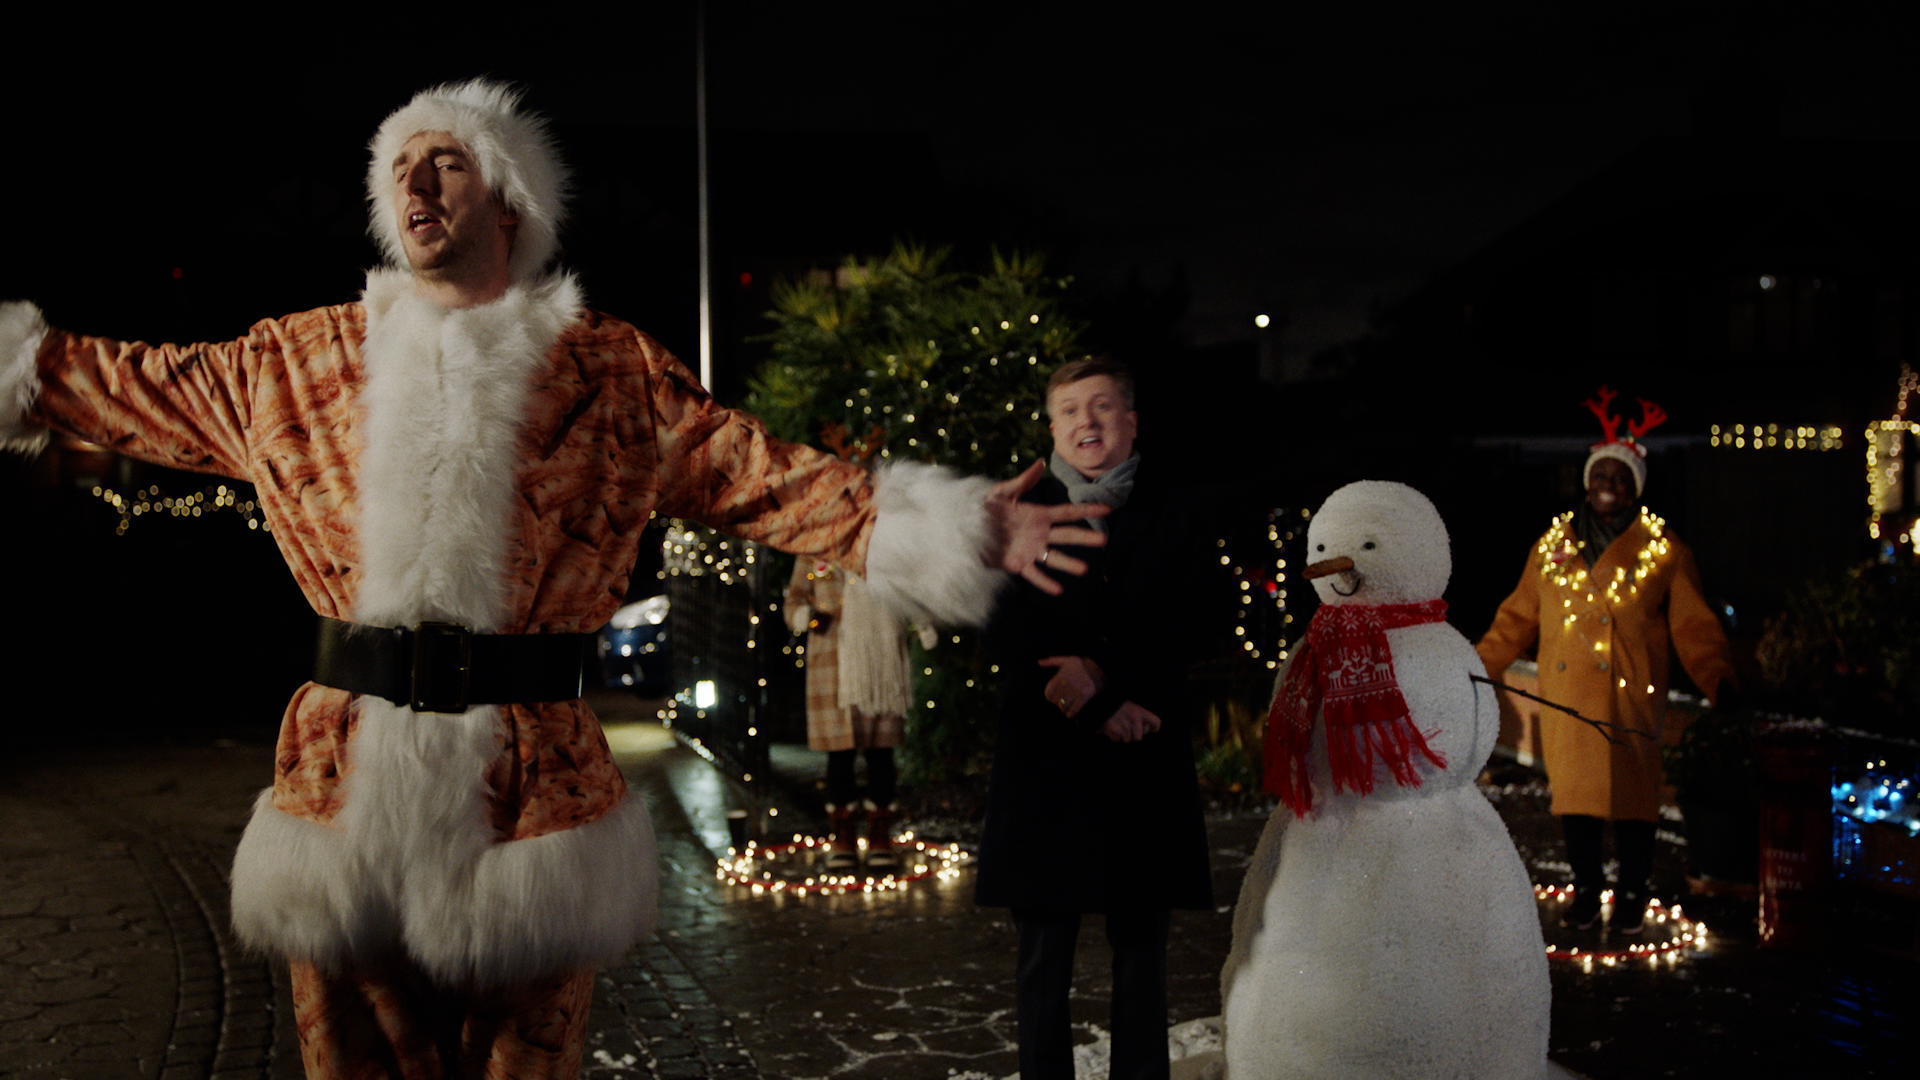 LadBaby joined by Aled Jones and Tony Mortimer for Walkers Christmas advert